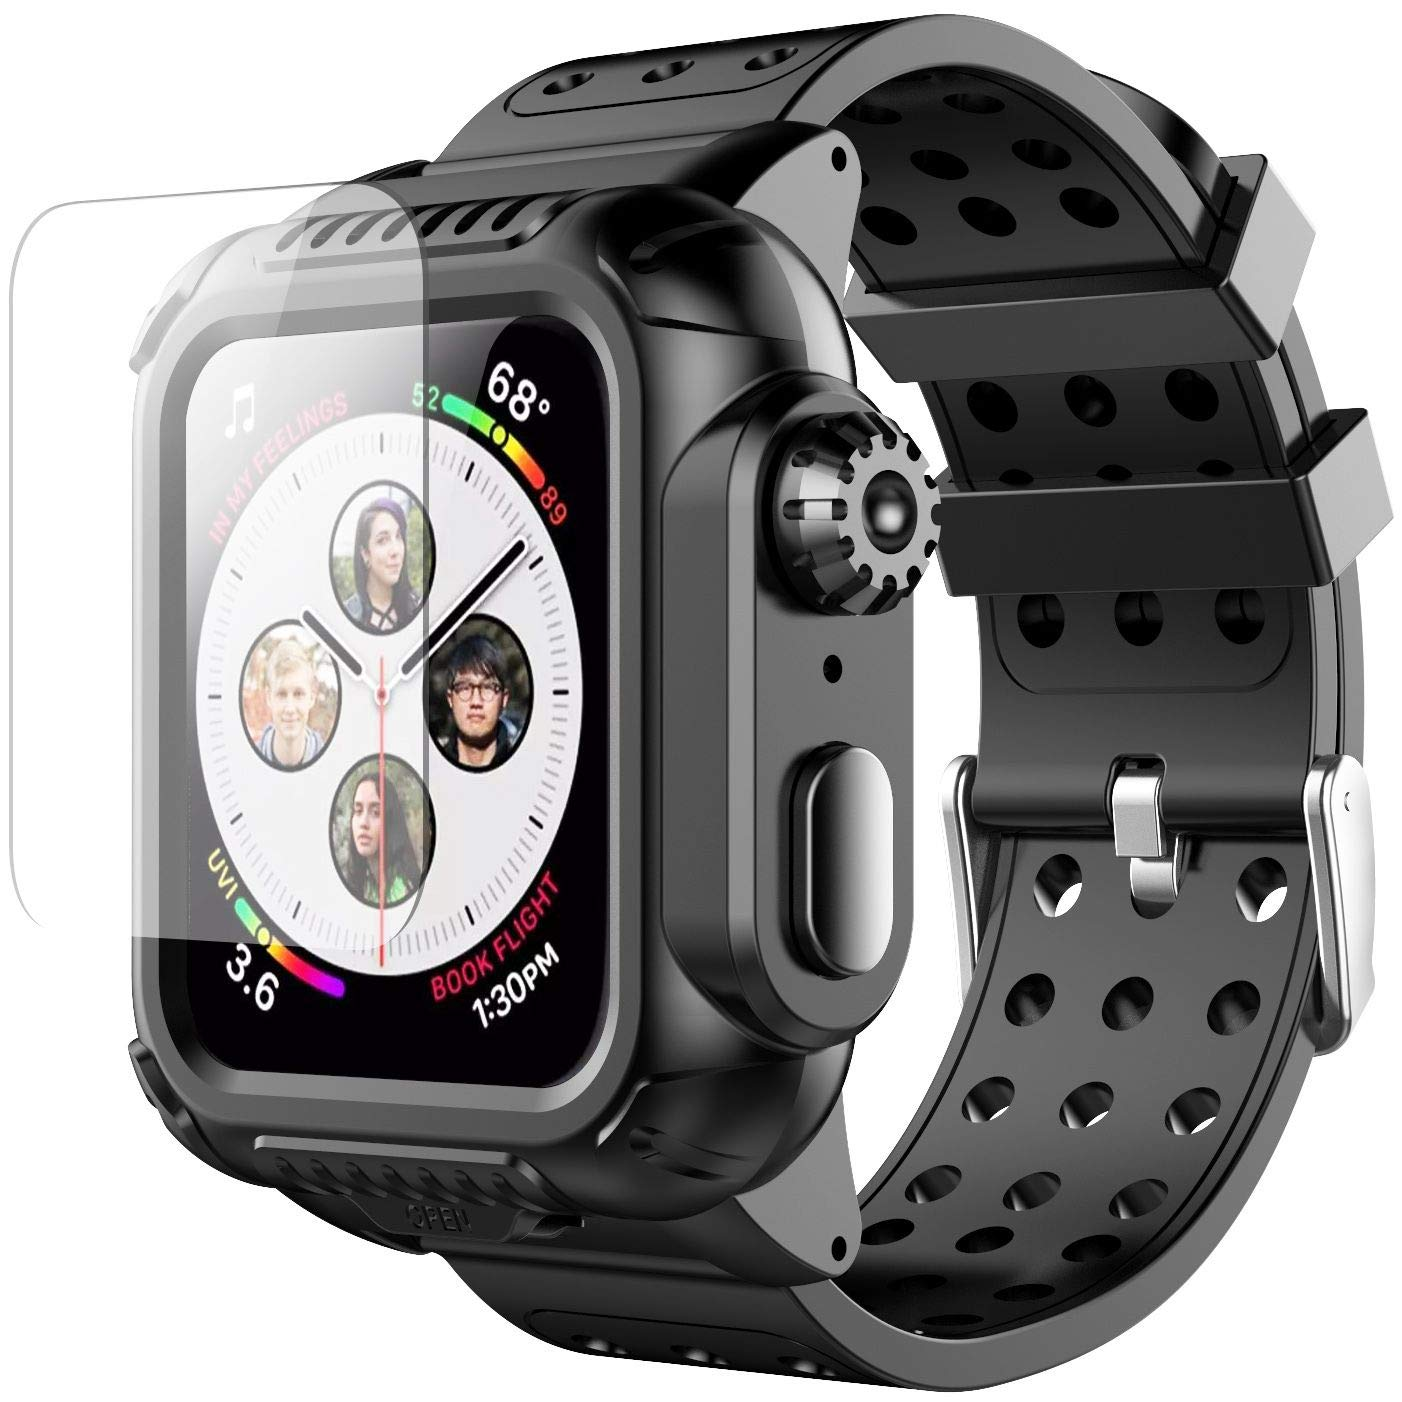 Apple Watch 4 Case 44mm with Band(2018), Oterkin Rugged Watch 4 Case with Strap Band Built-in Screen Protector Full Body Protective Case for Apple Watch Series 4(44mm) Shockproof/Anti-Scratch and More by Oterkin (Image #1)